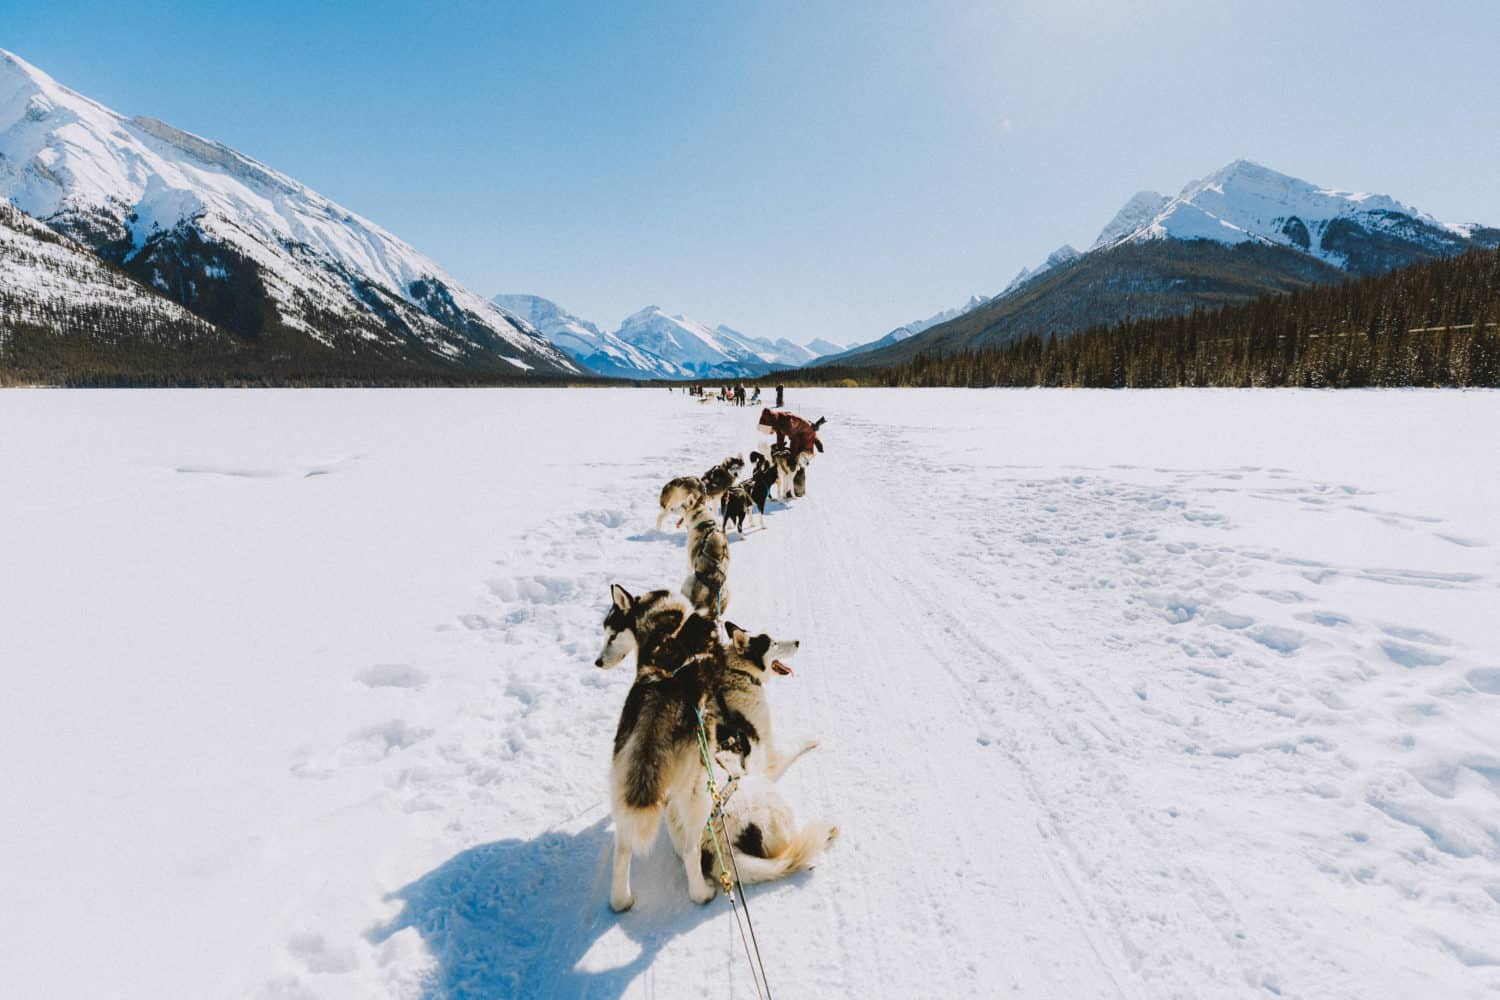 Taking a break from Dog sledding in Banff on the pond - TheMandagies.com